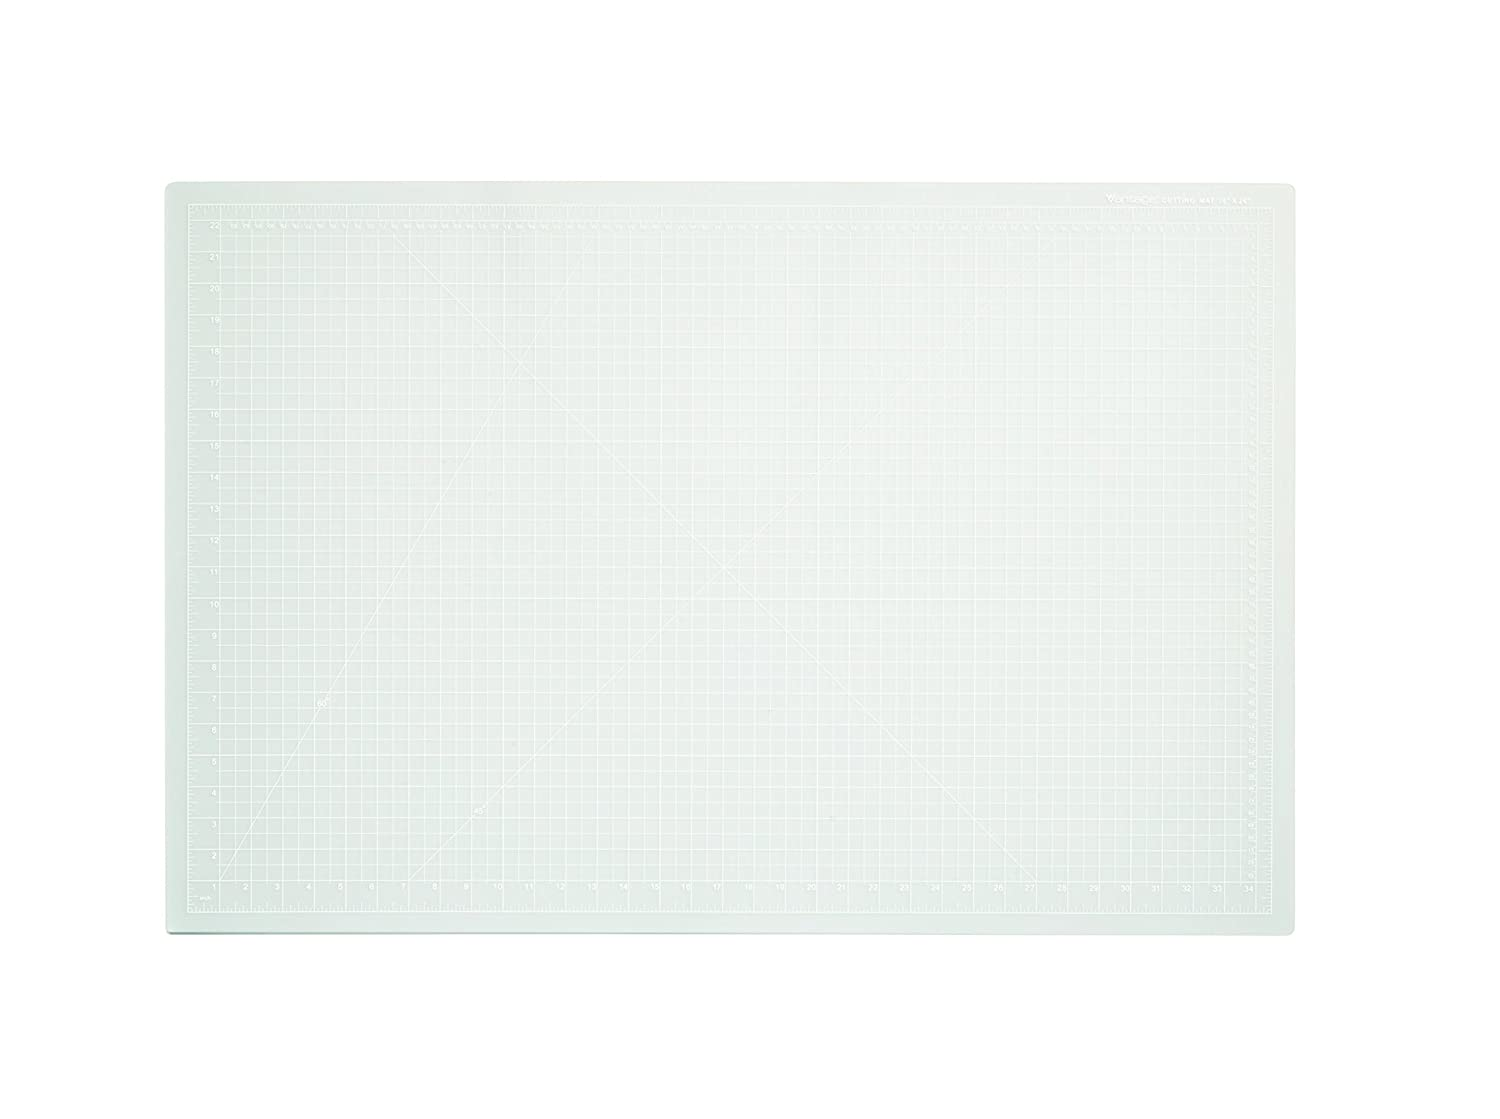 Dahle 10683 Vantage Self-Healing Cutting Mat, 24 x 36, Crystal Clear, 5 layer PVC Construction, 1/2 Grid Lines, Self Healing for Maximum Durability, Perfect for Cropping Photos, Sewing, and Crafts 24 x 36 Crystal Clear 1/2 Grid Lines 10663-12587